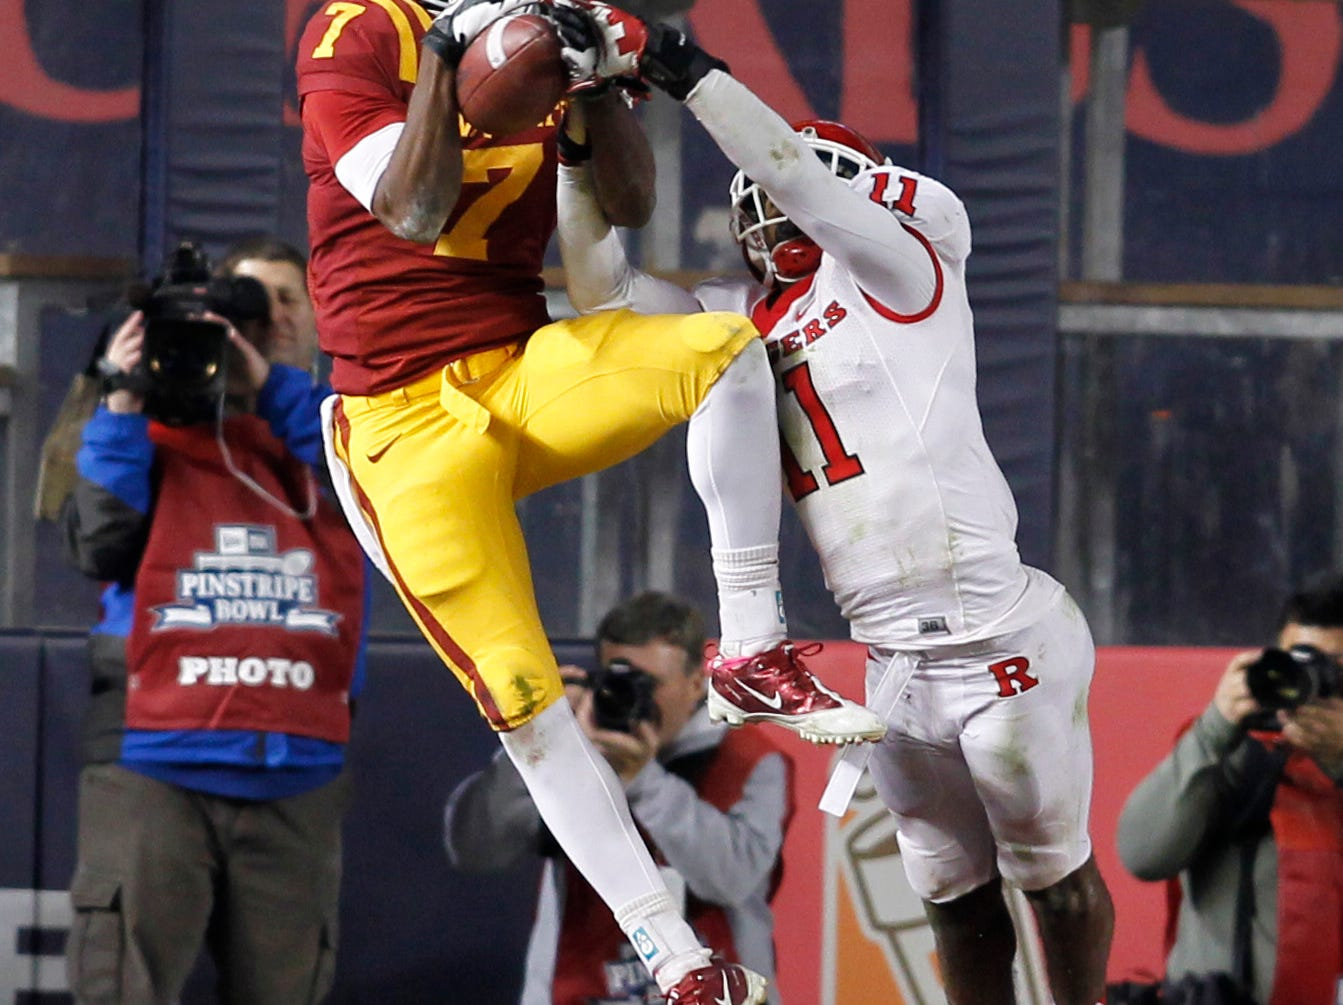 Rutgers Scarlet Knights defensive back Logan Ryan (11) knocks the pass in the end zone away from Iowa State Cyclones wide receiver Darius Reynolds (7) on fourth down in the fourth quarter of the Pinstripe Bowl at Yankee Stadium.